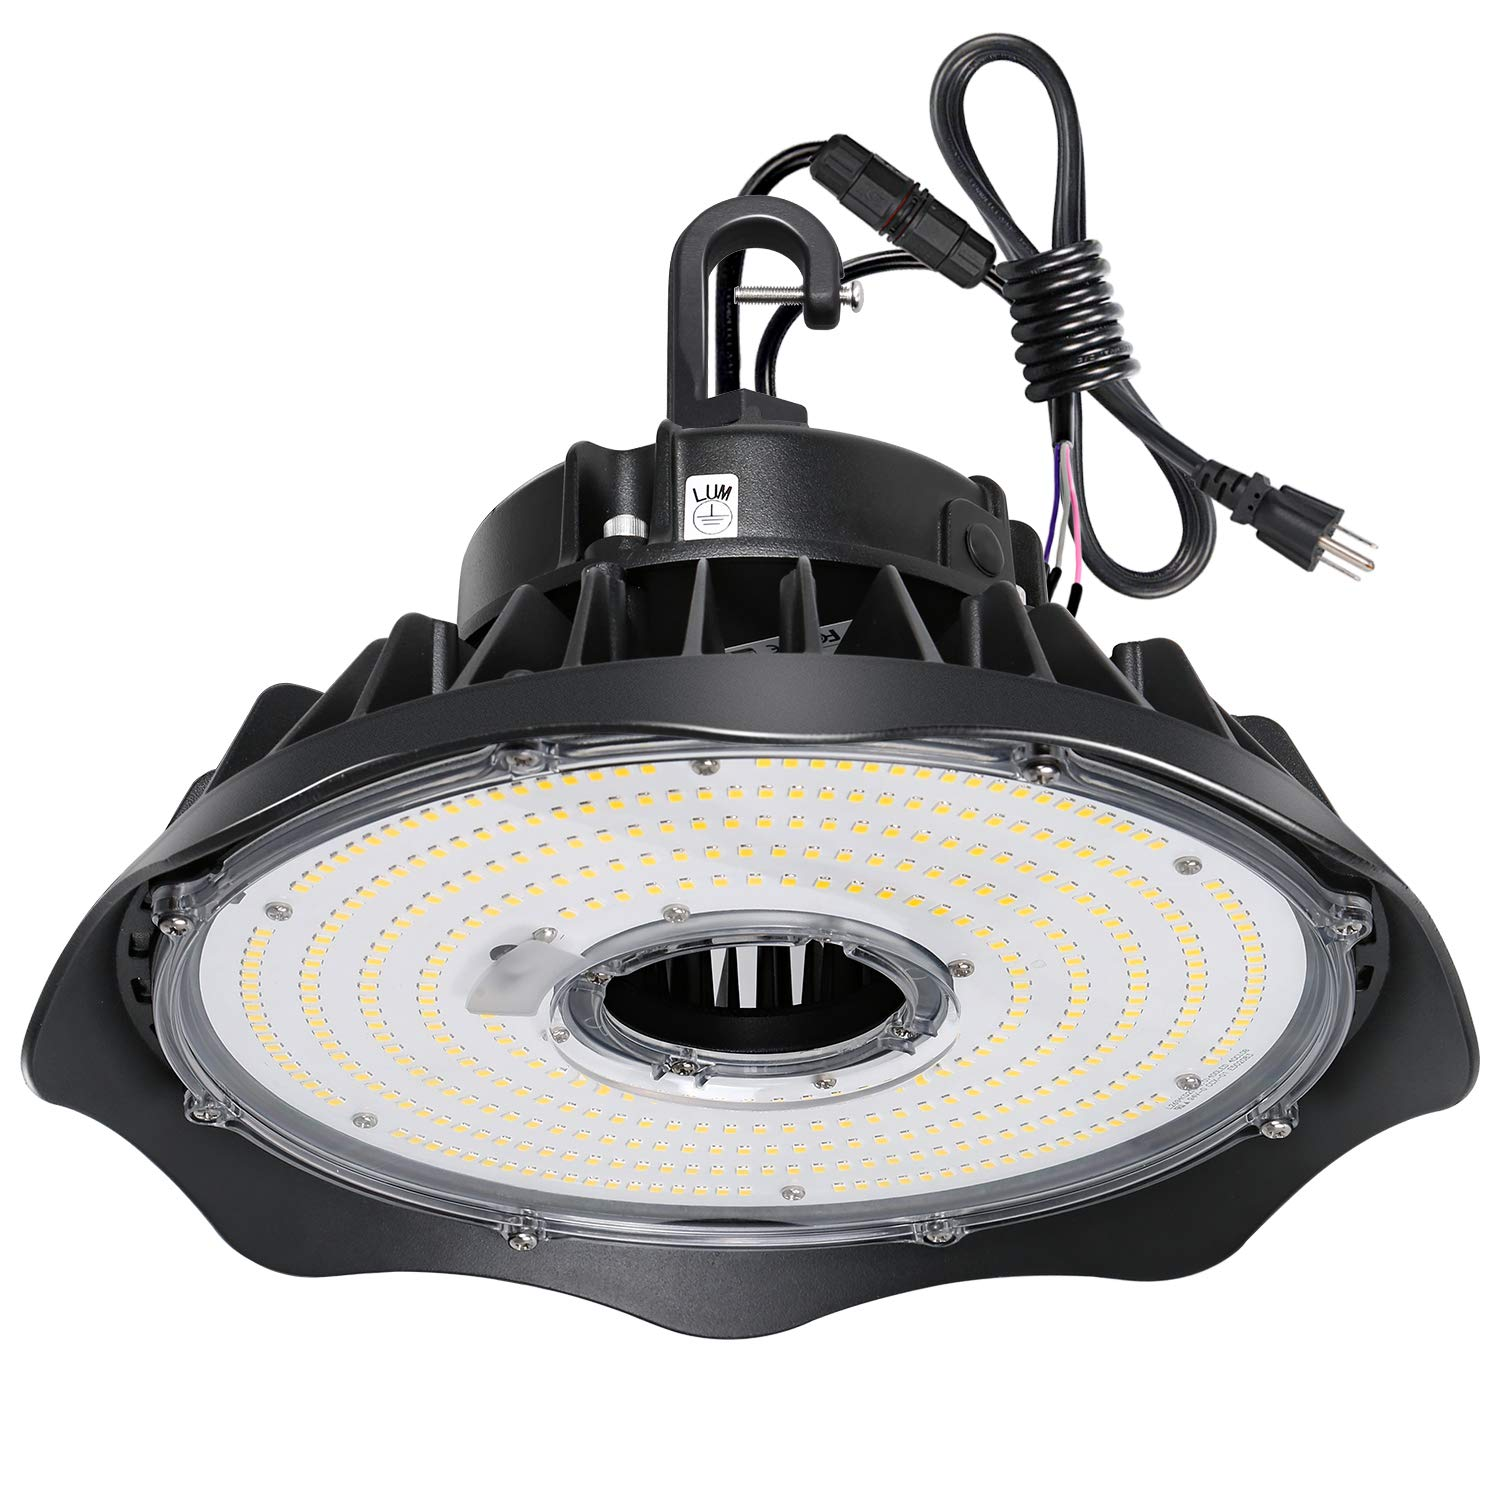 Hykolity 150W UFO LED High Bay Light Fixture, 19500lm 5000K 1-10V Dimmable 5' Cable with US Plug DLC Complied High Bay Light[250W/400W MH/HPS Equiv.] Commercial Warehouse/Workshop/Outdoor Area Light